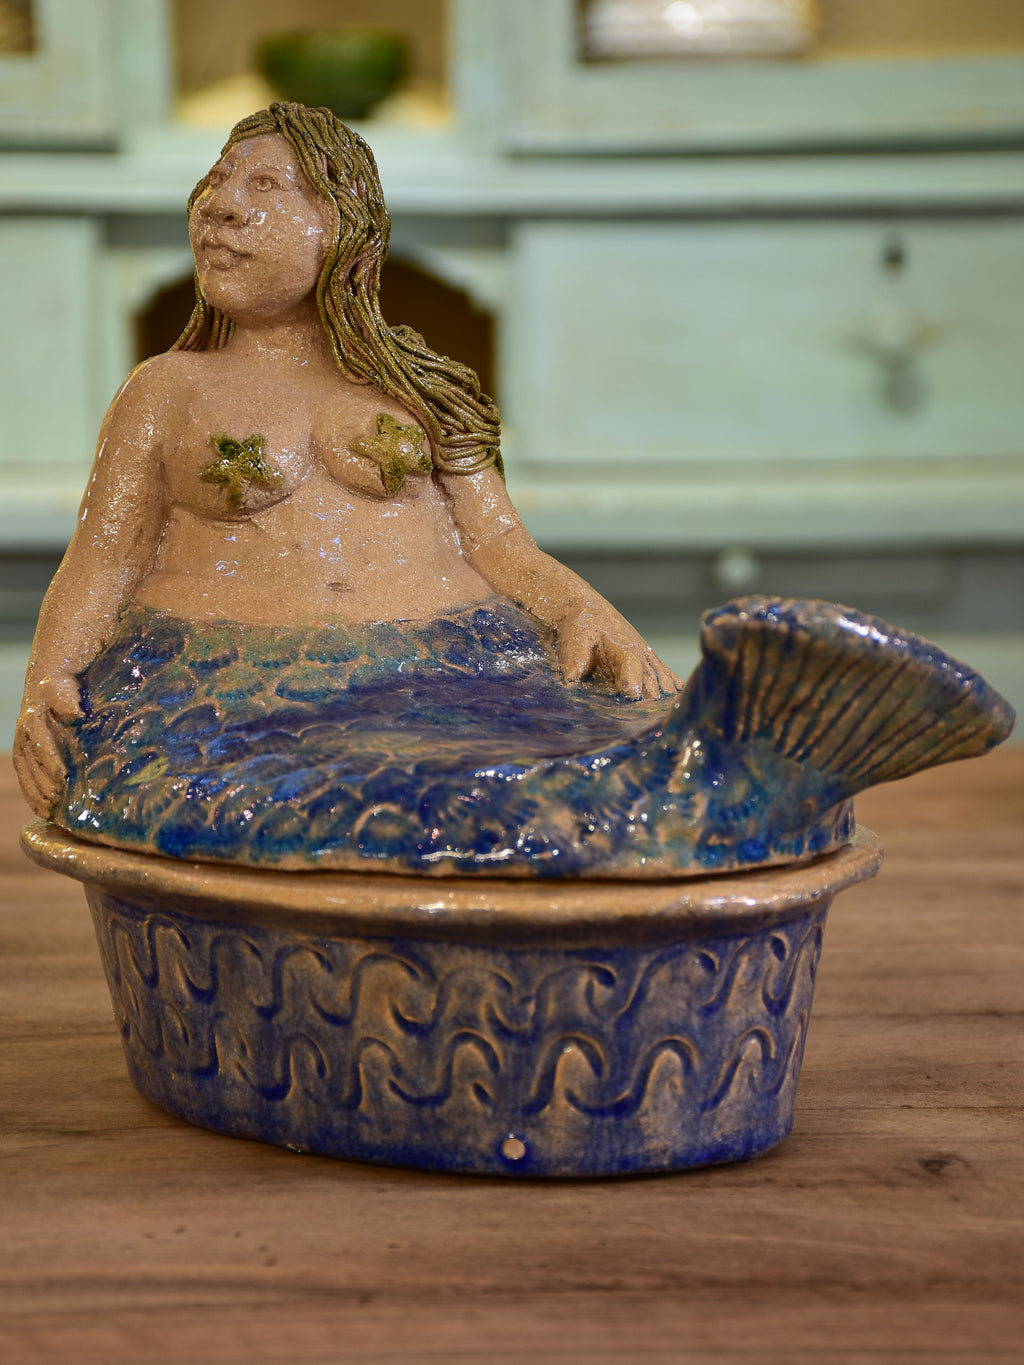 Artisan French baking dish - mermaid